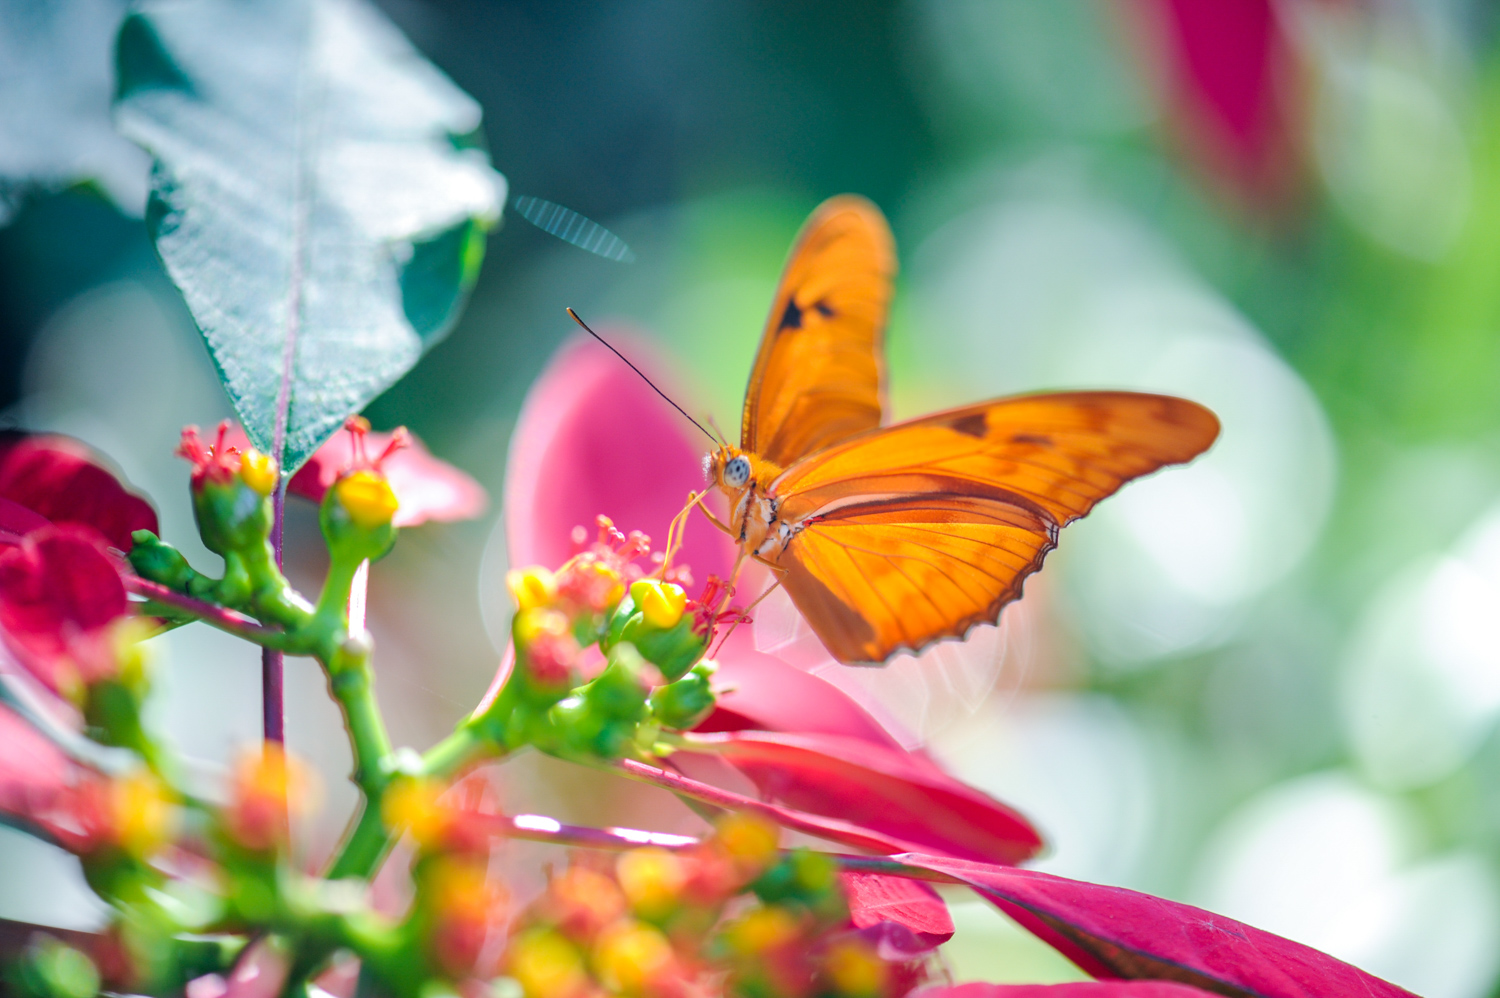 Color Photograph, Insect, Flower, Butterfly, Midwest, Interior Design, Wall Art